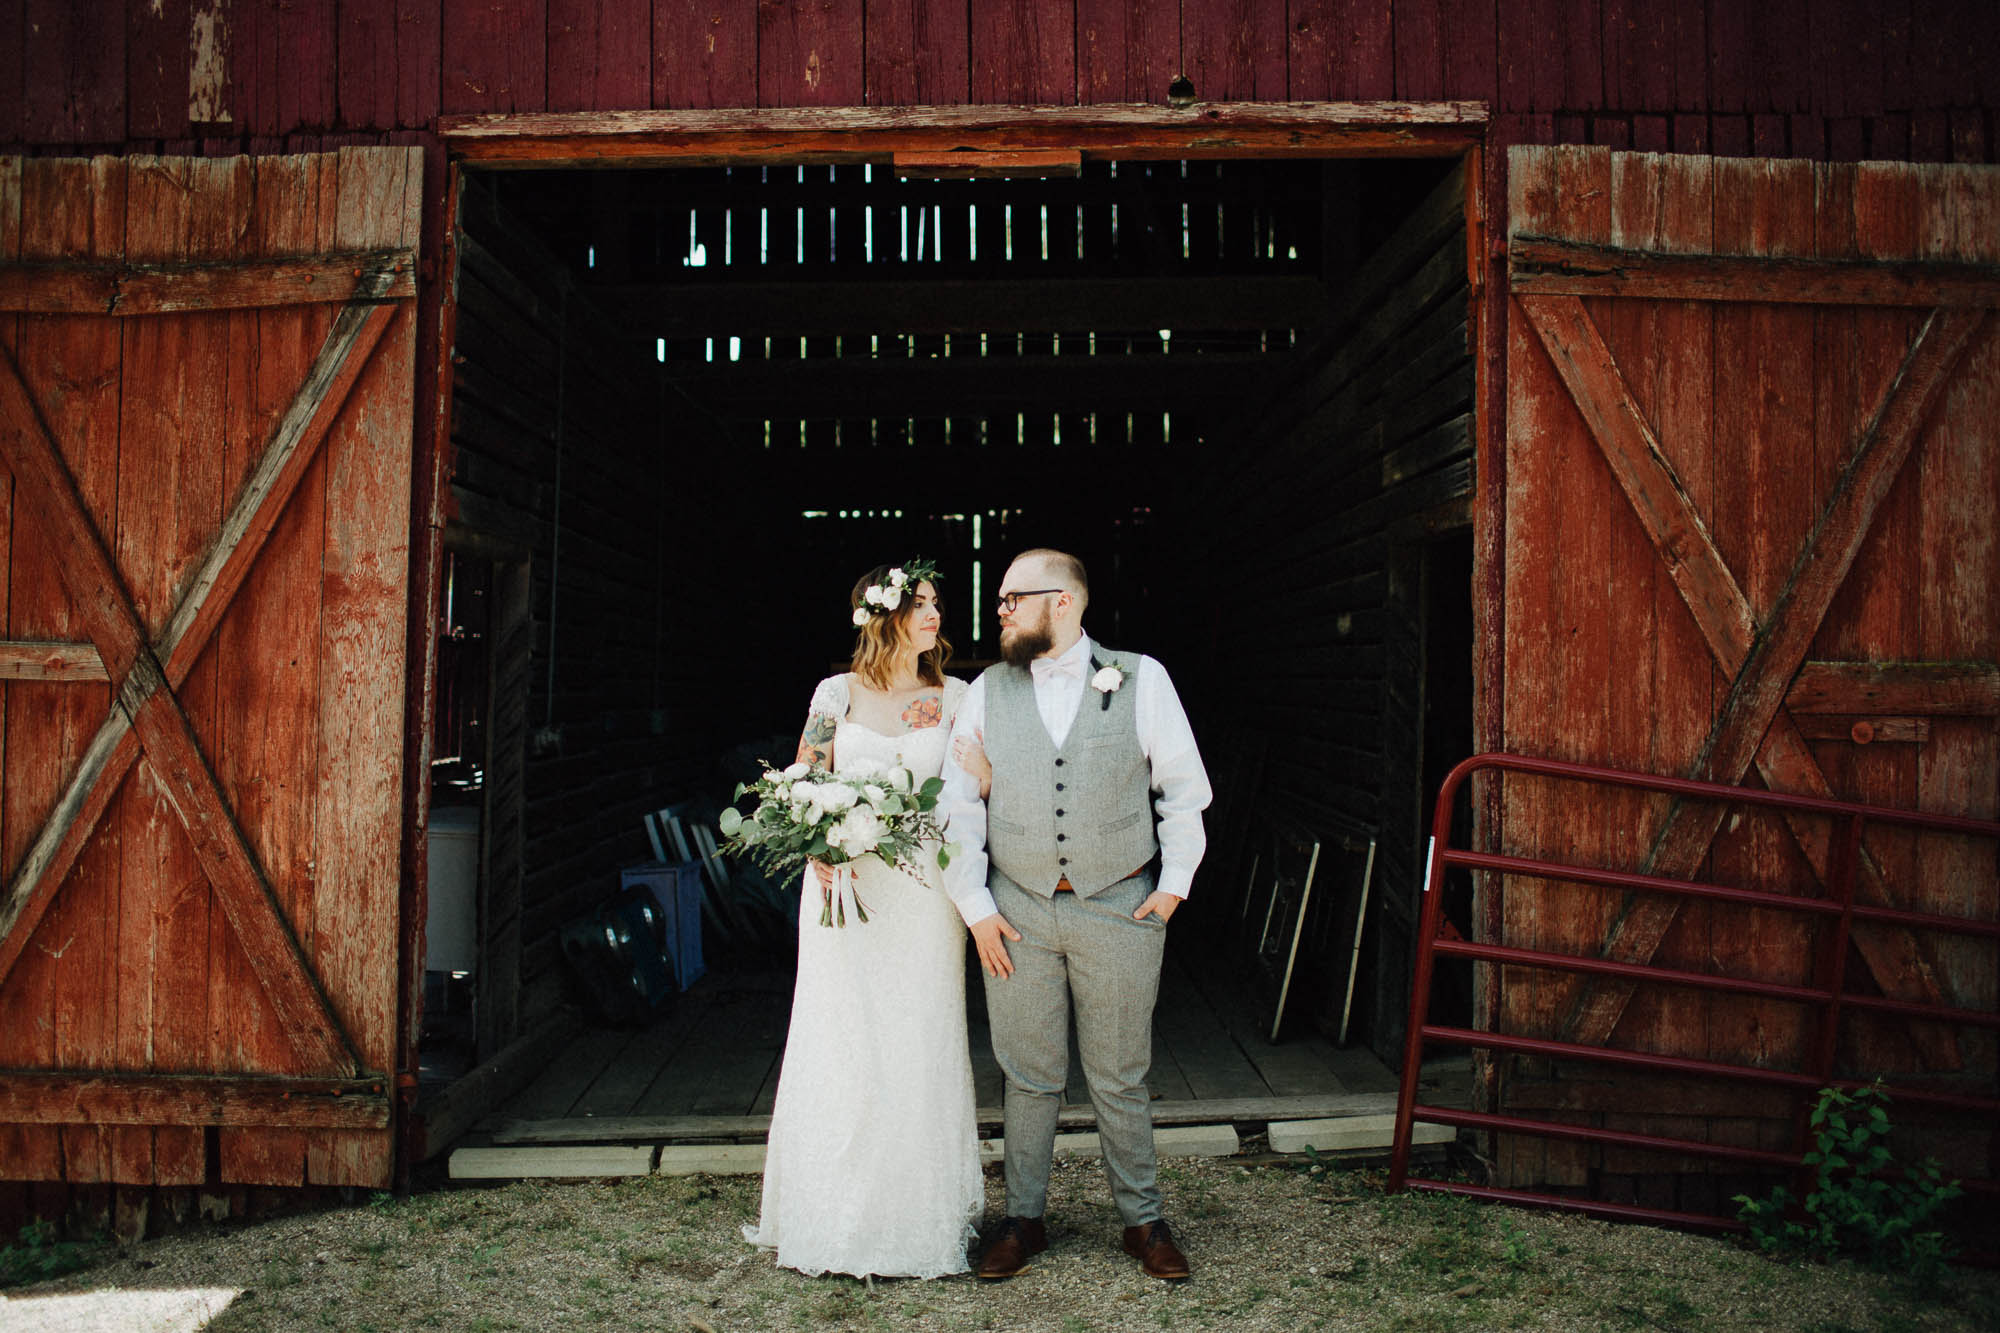 Jessi-Jake-The-Brauns-Ohio-Barn-B&B-Wedding-044@2x.jpg